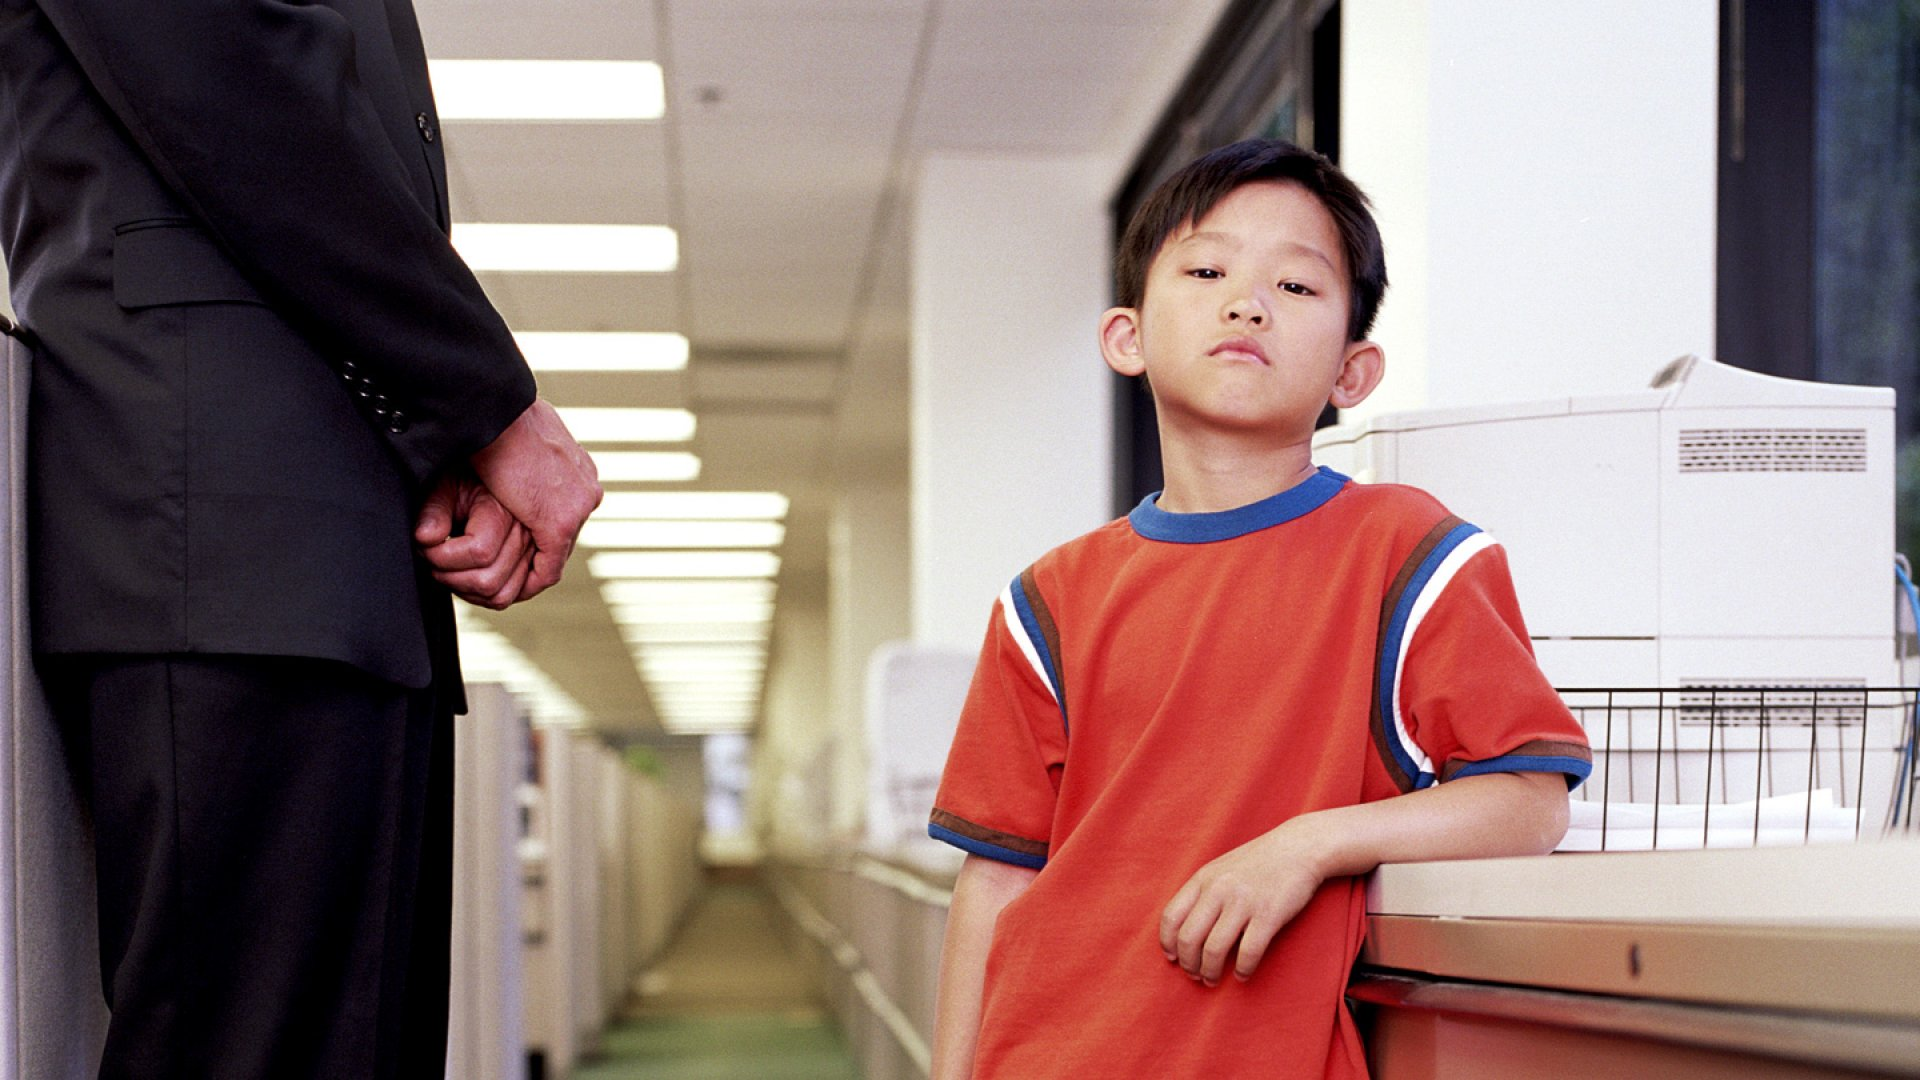 Want Higher Productivity? Stop Treating Employees Like Children